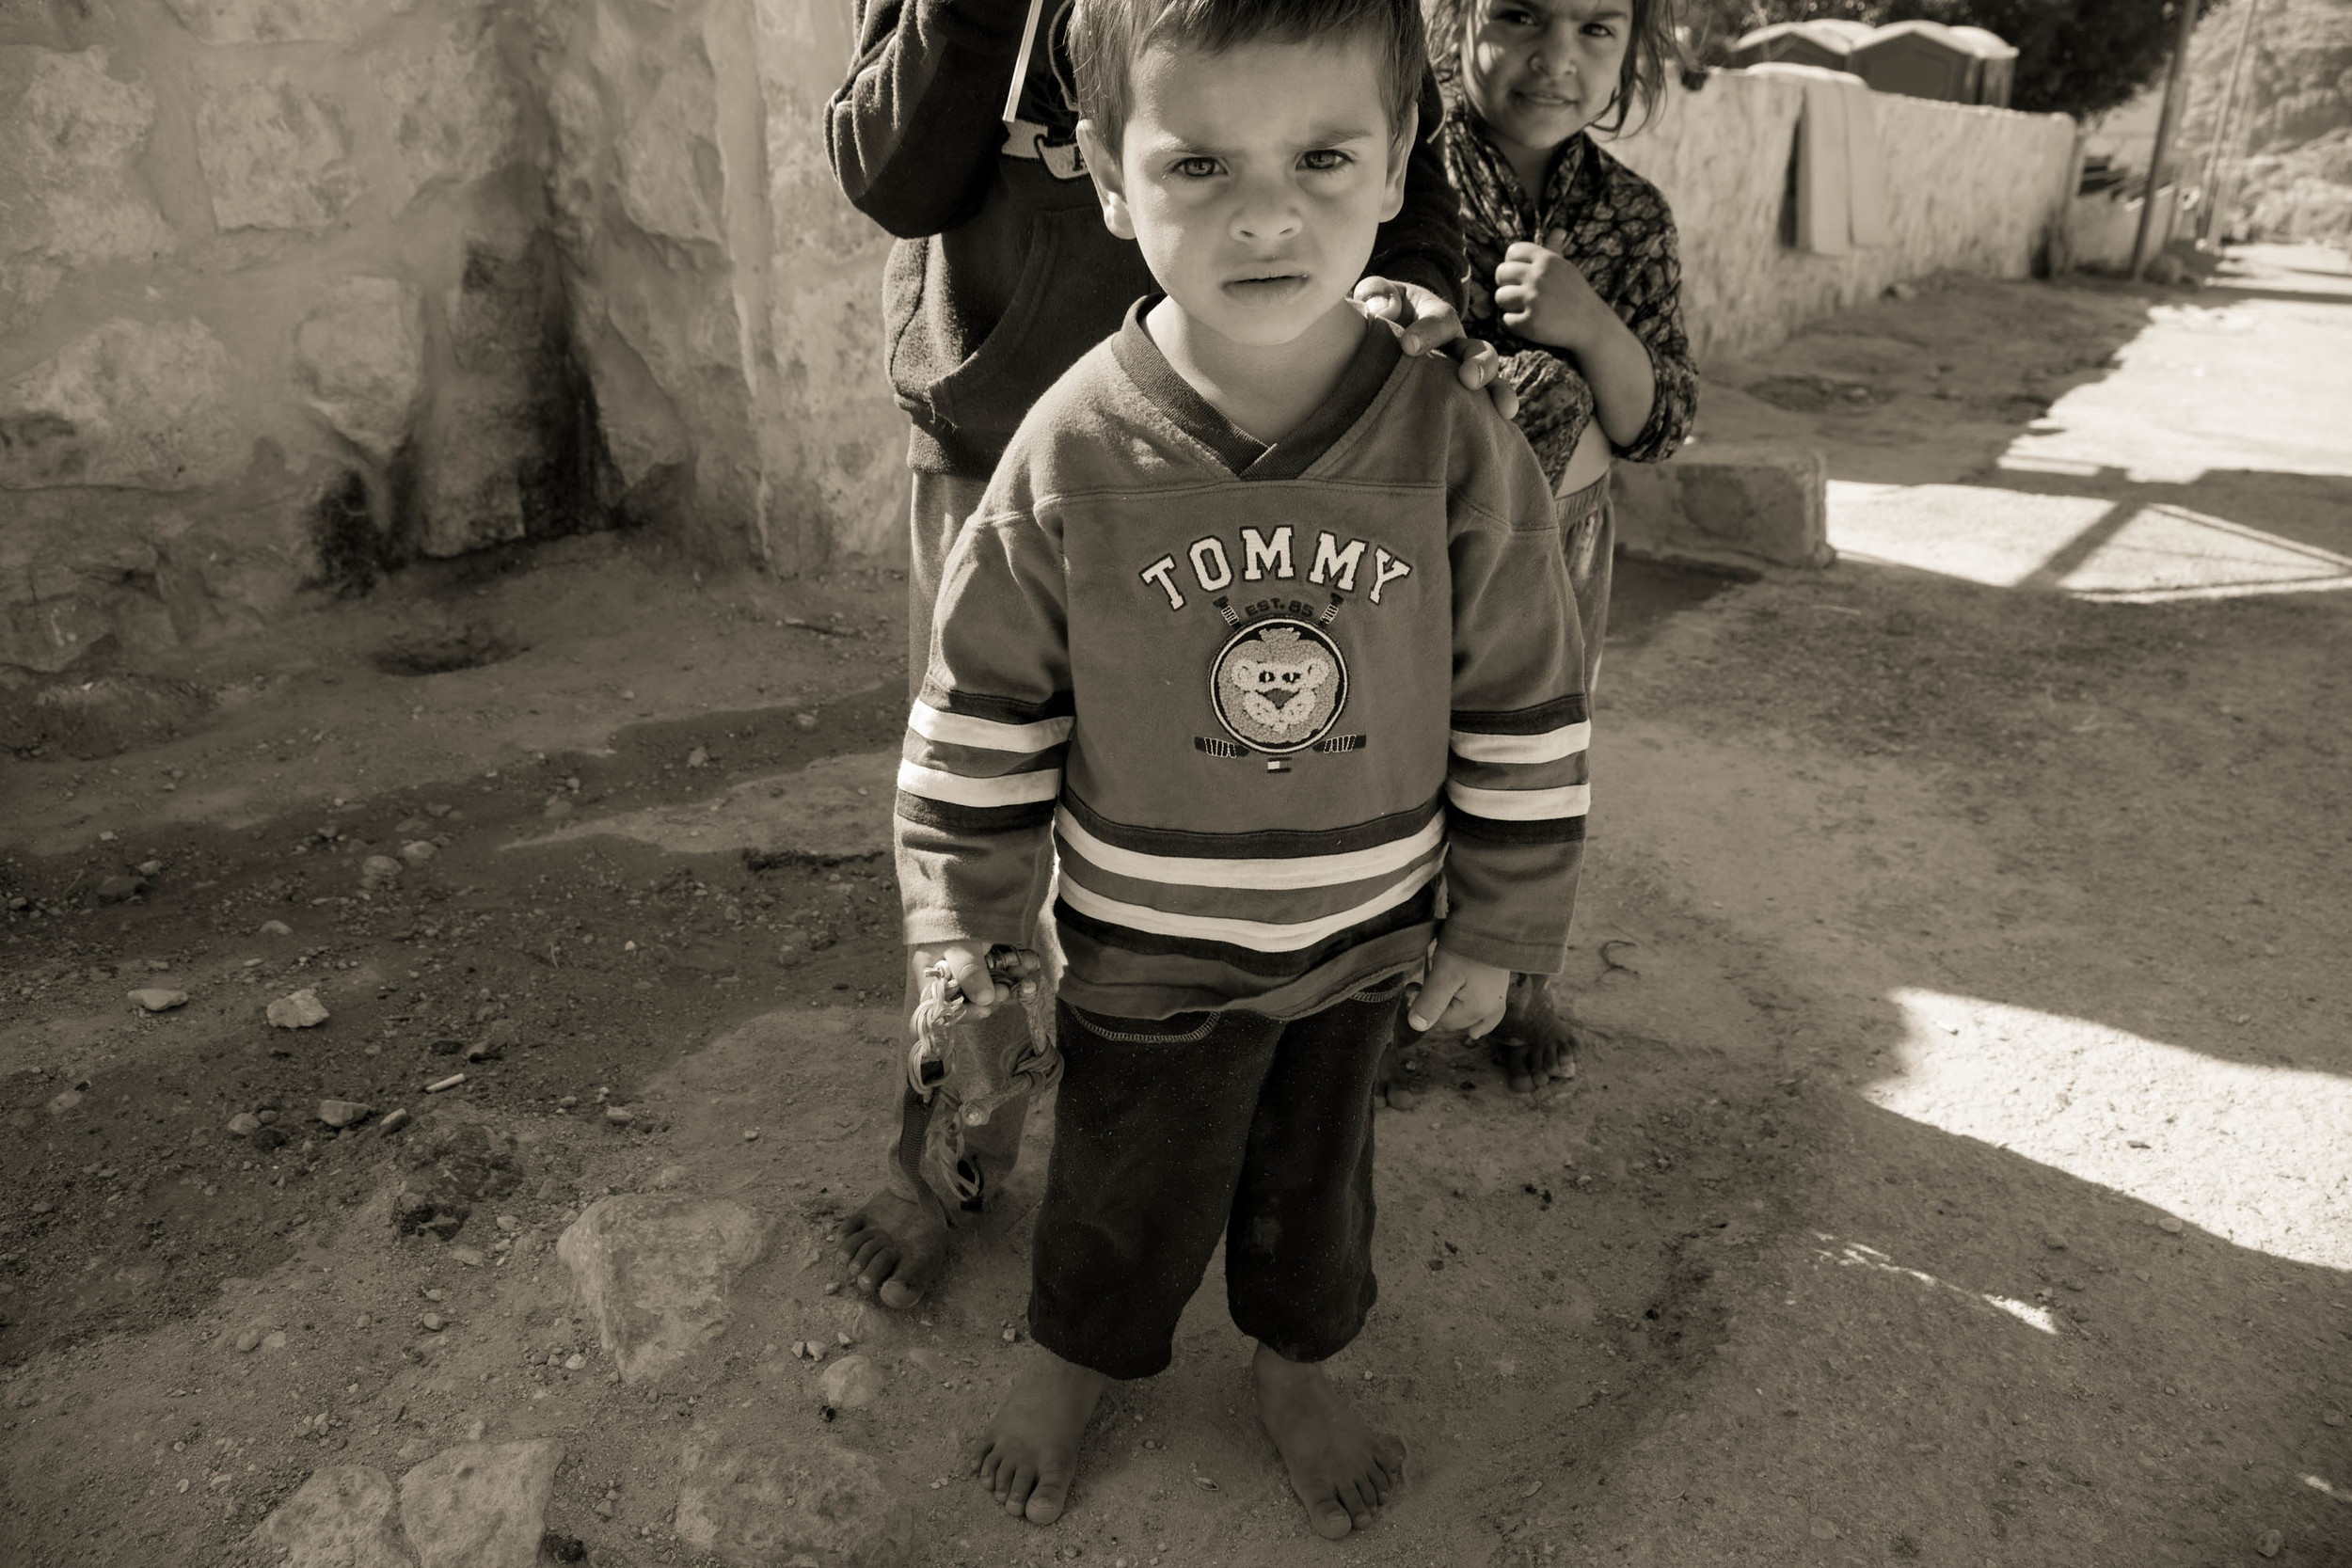 documentary photography, jordan, middle east, children, street photography